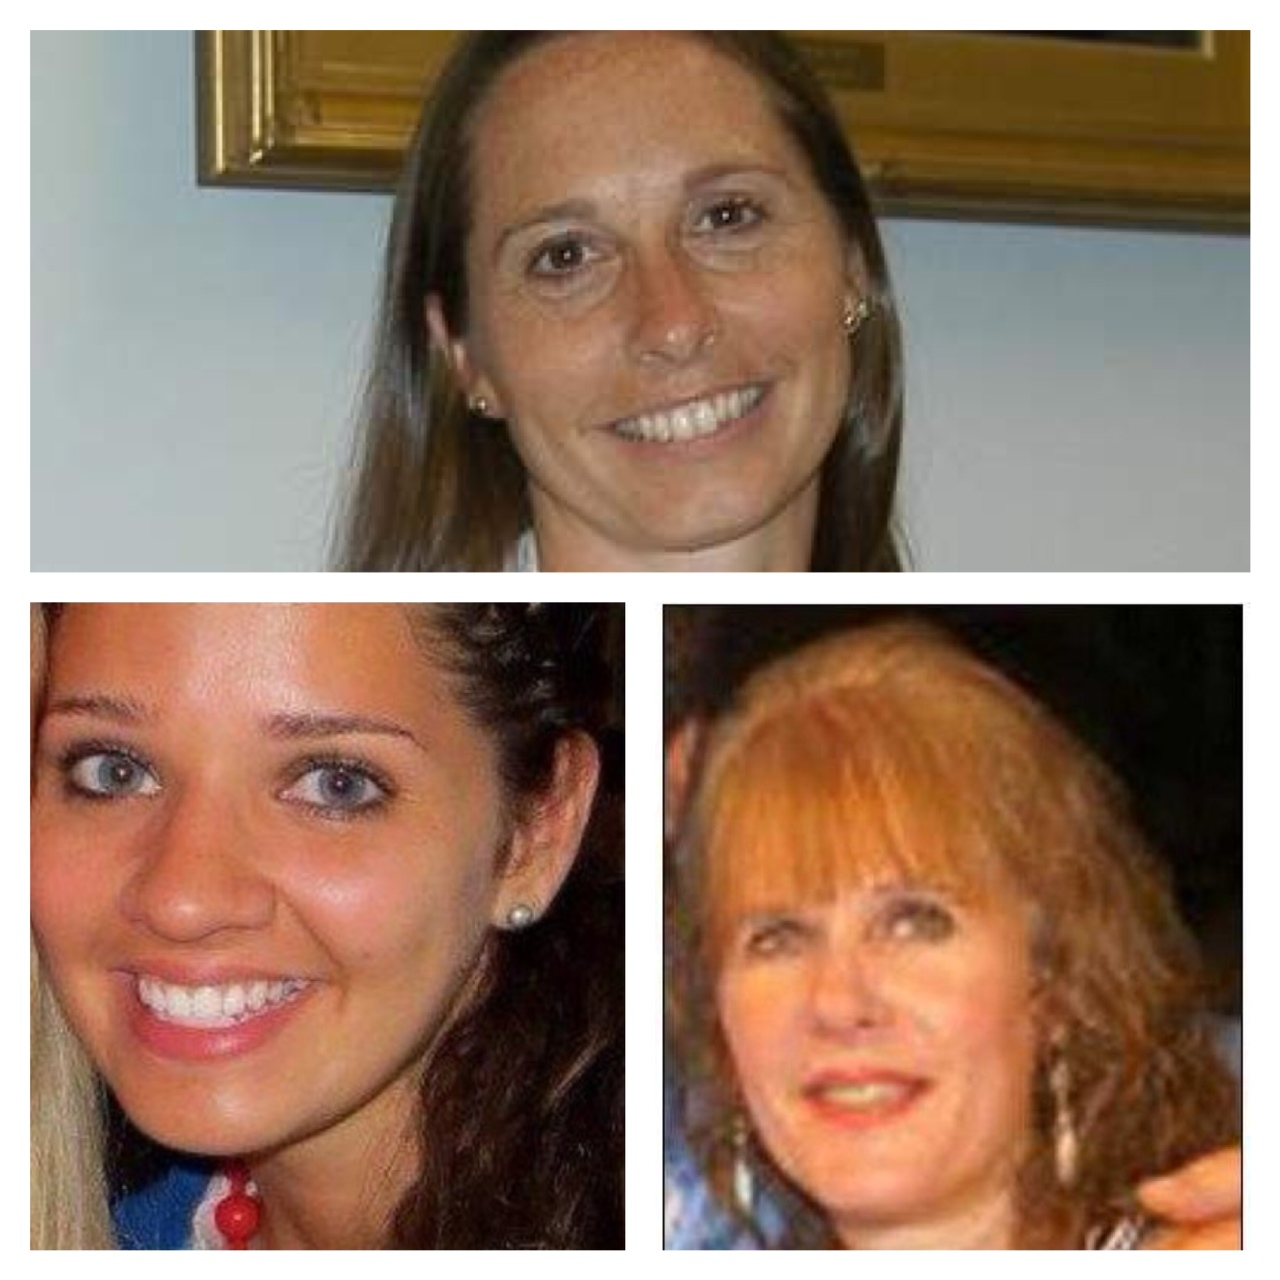 Sandy Hook Shooting Massacre At Connecticut Elementary: The Heroes Of Sandy Hook Elementary